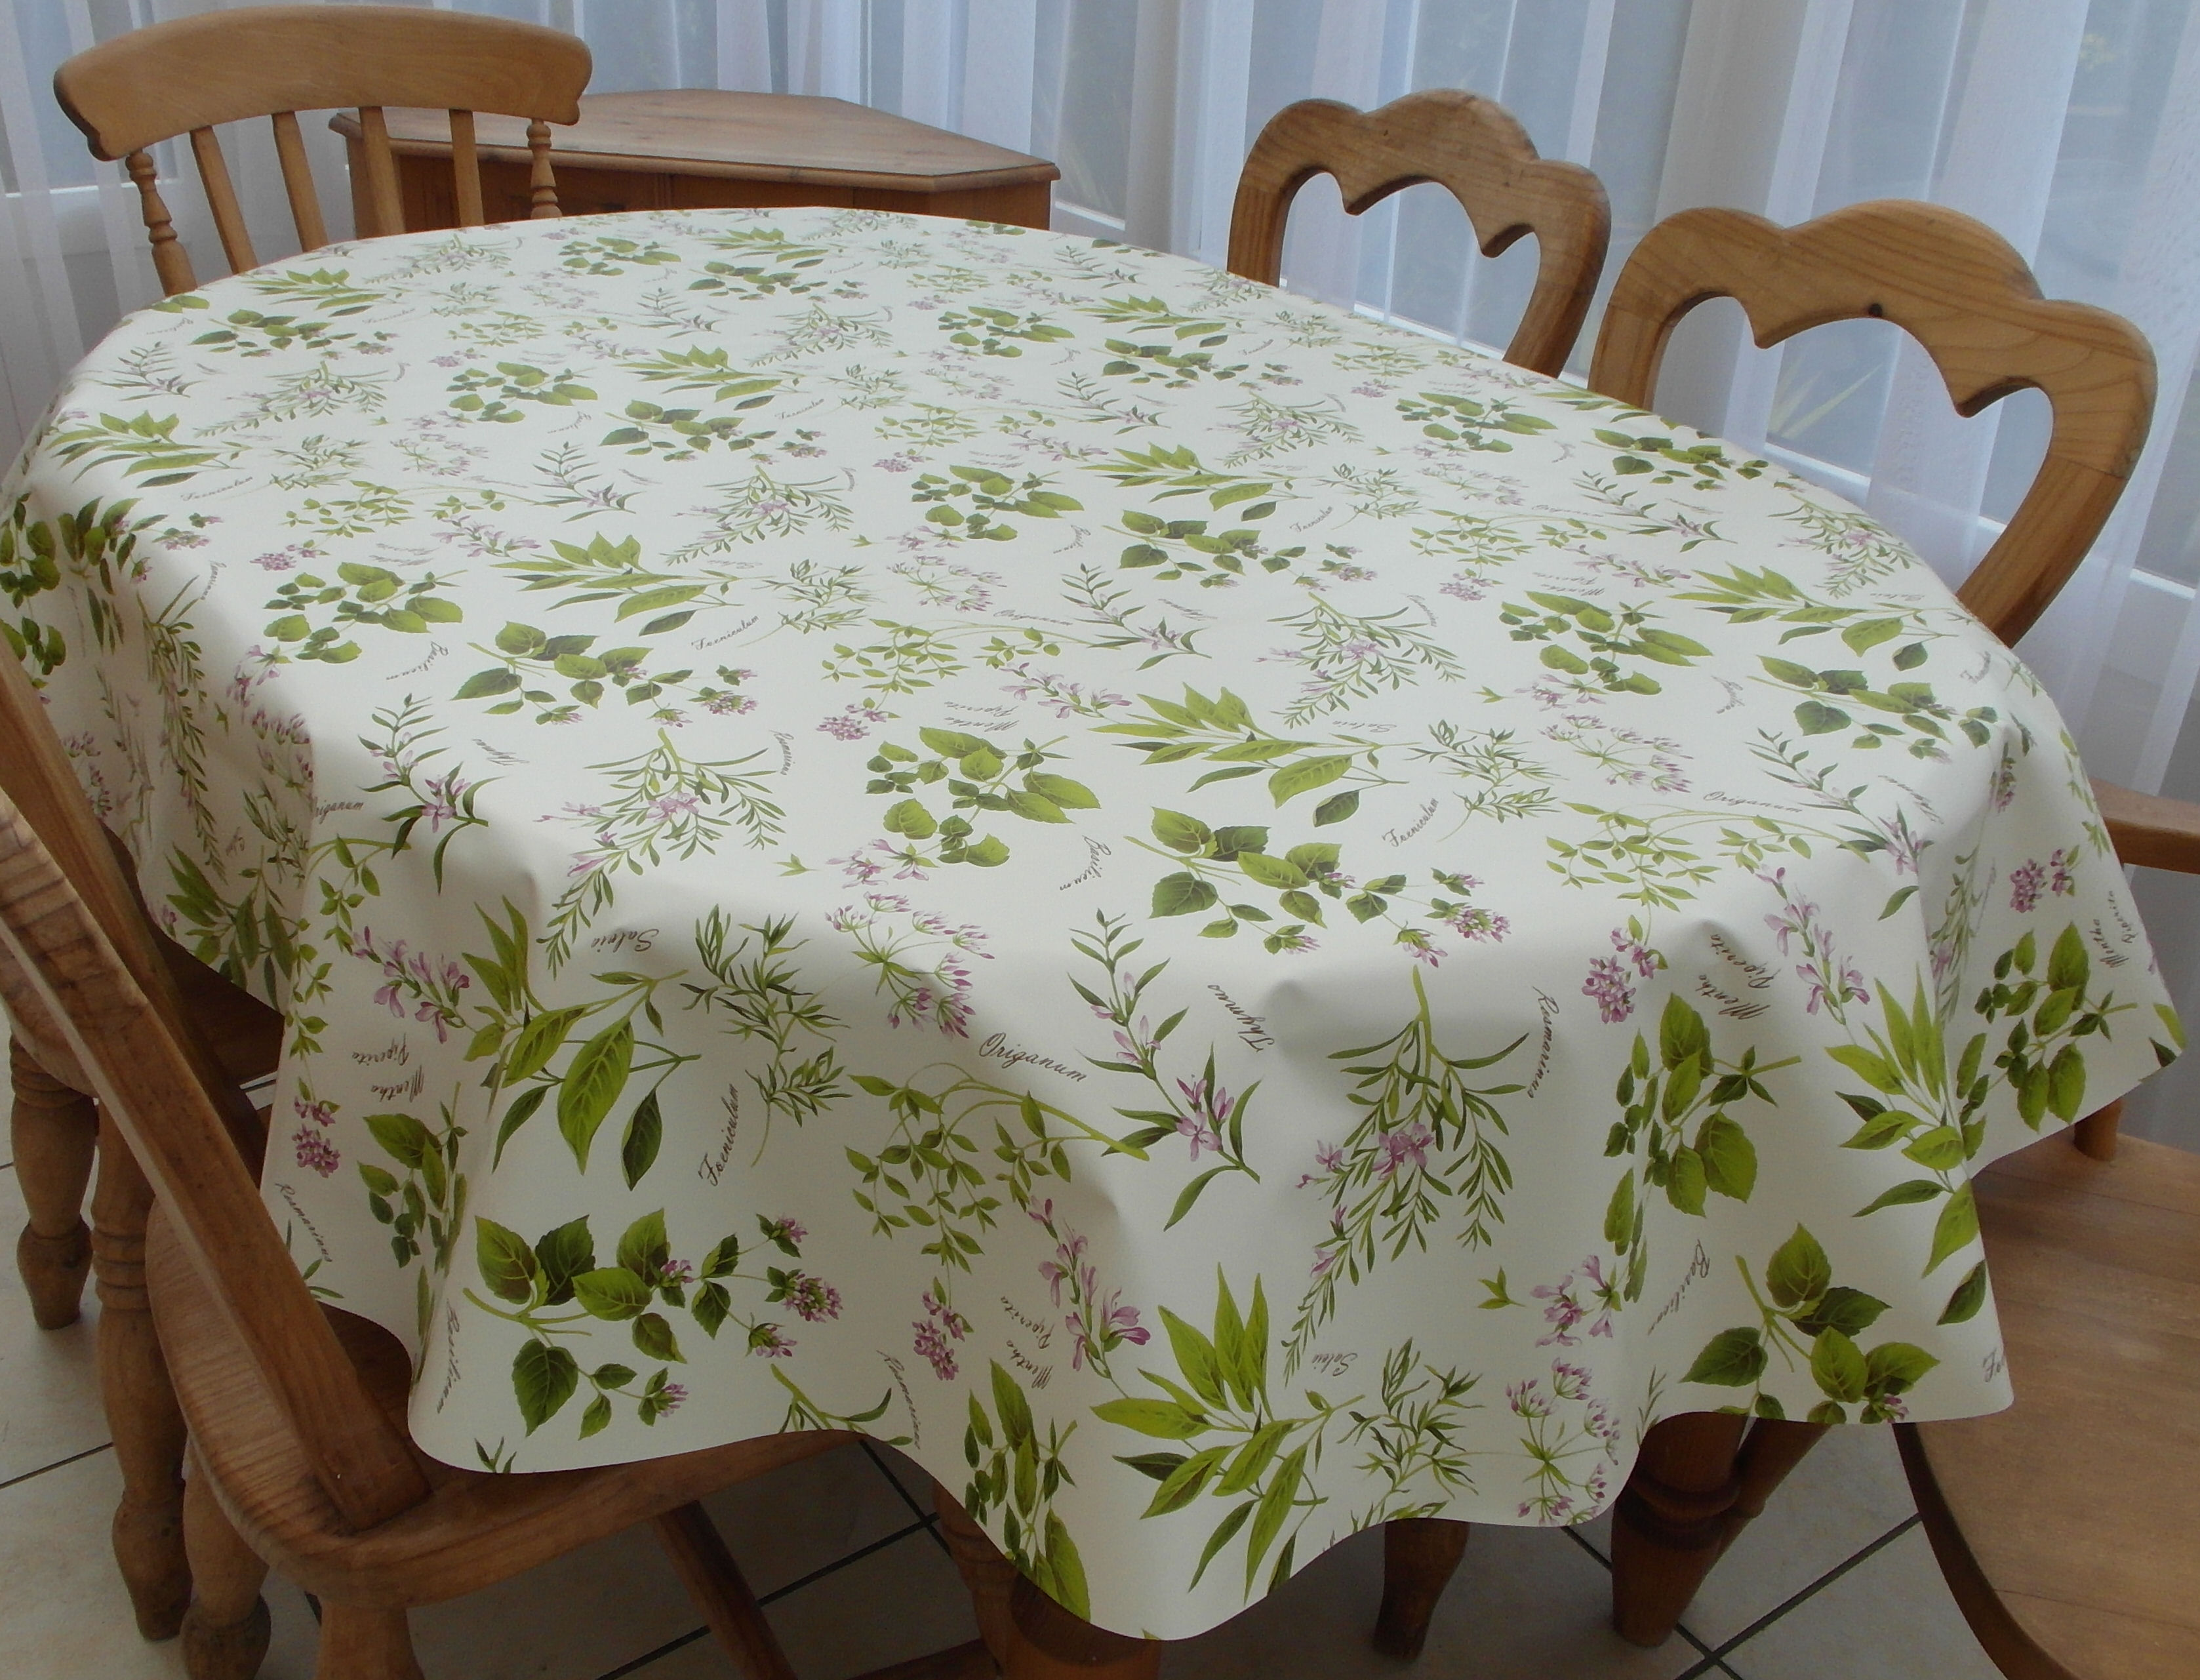 Oval Wipe Clean Tablecloth Herb Garden The Tablecloth